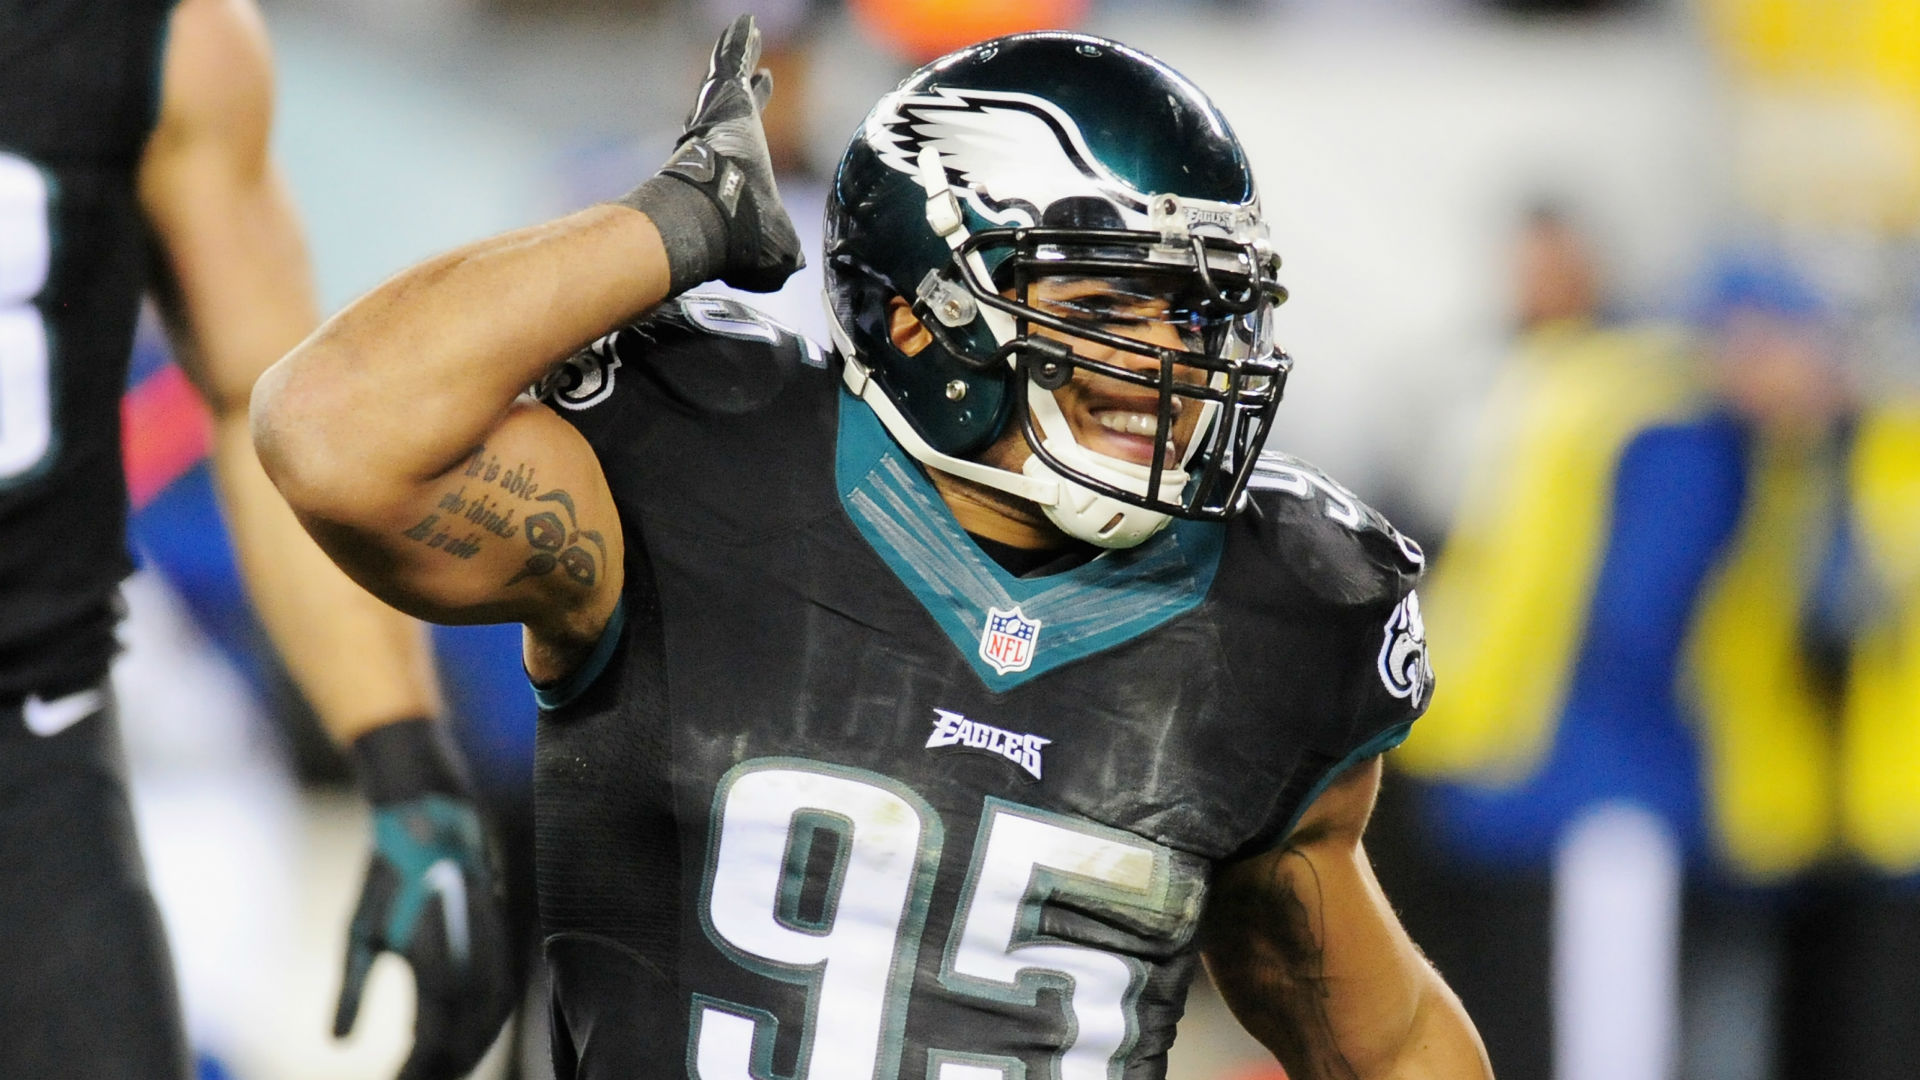 Mychal Kendricks expected to sign one-year deal with Seahawks, report says